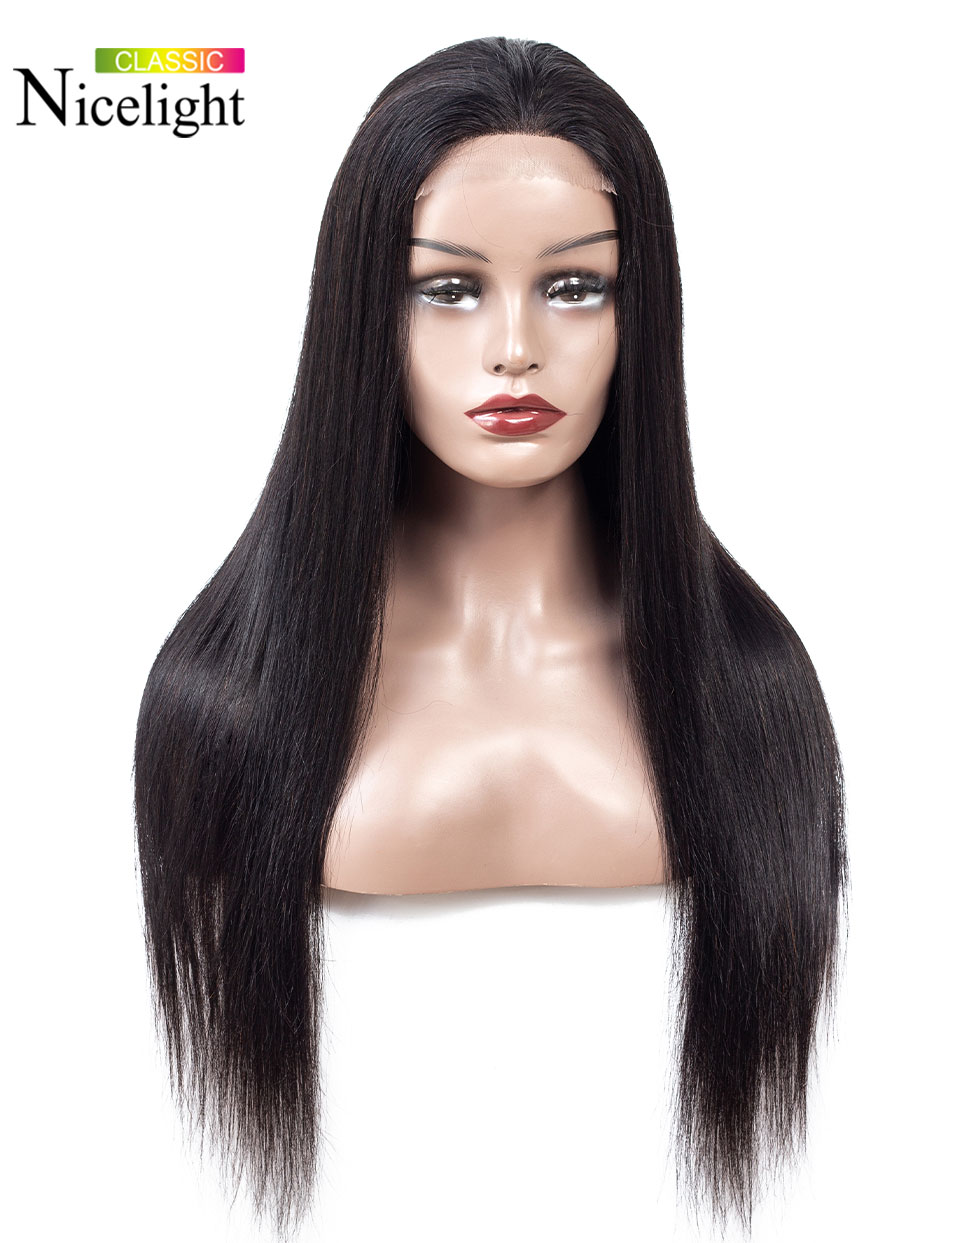 H49c1f916321142a38f1e1d5bc2cd18ecS Straight Closure Wig Human Hair Wigs With Closure 4X4 Lace Wig Nicelight Indian Wig Remy Natural Hair Long Black Closure Wig